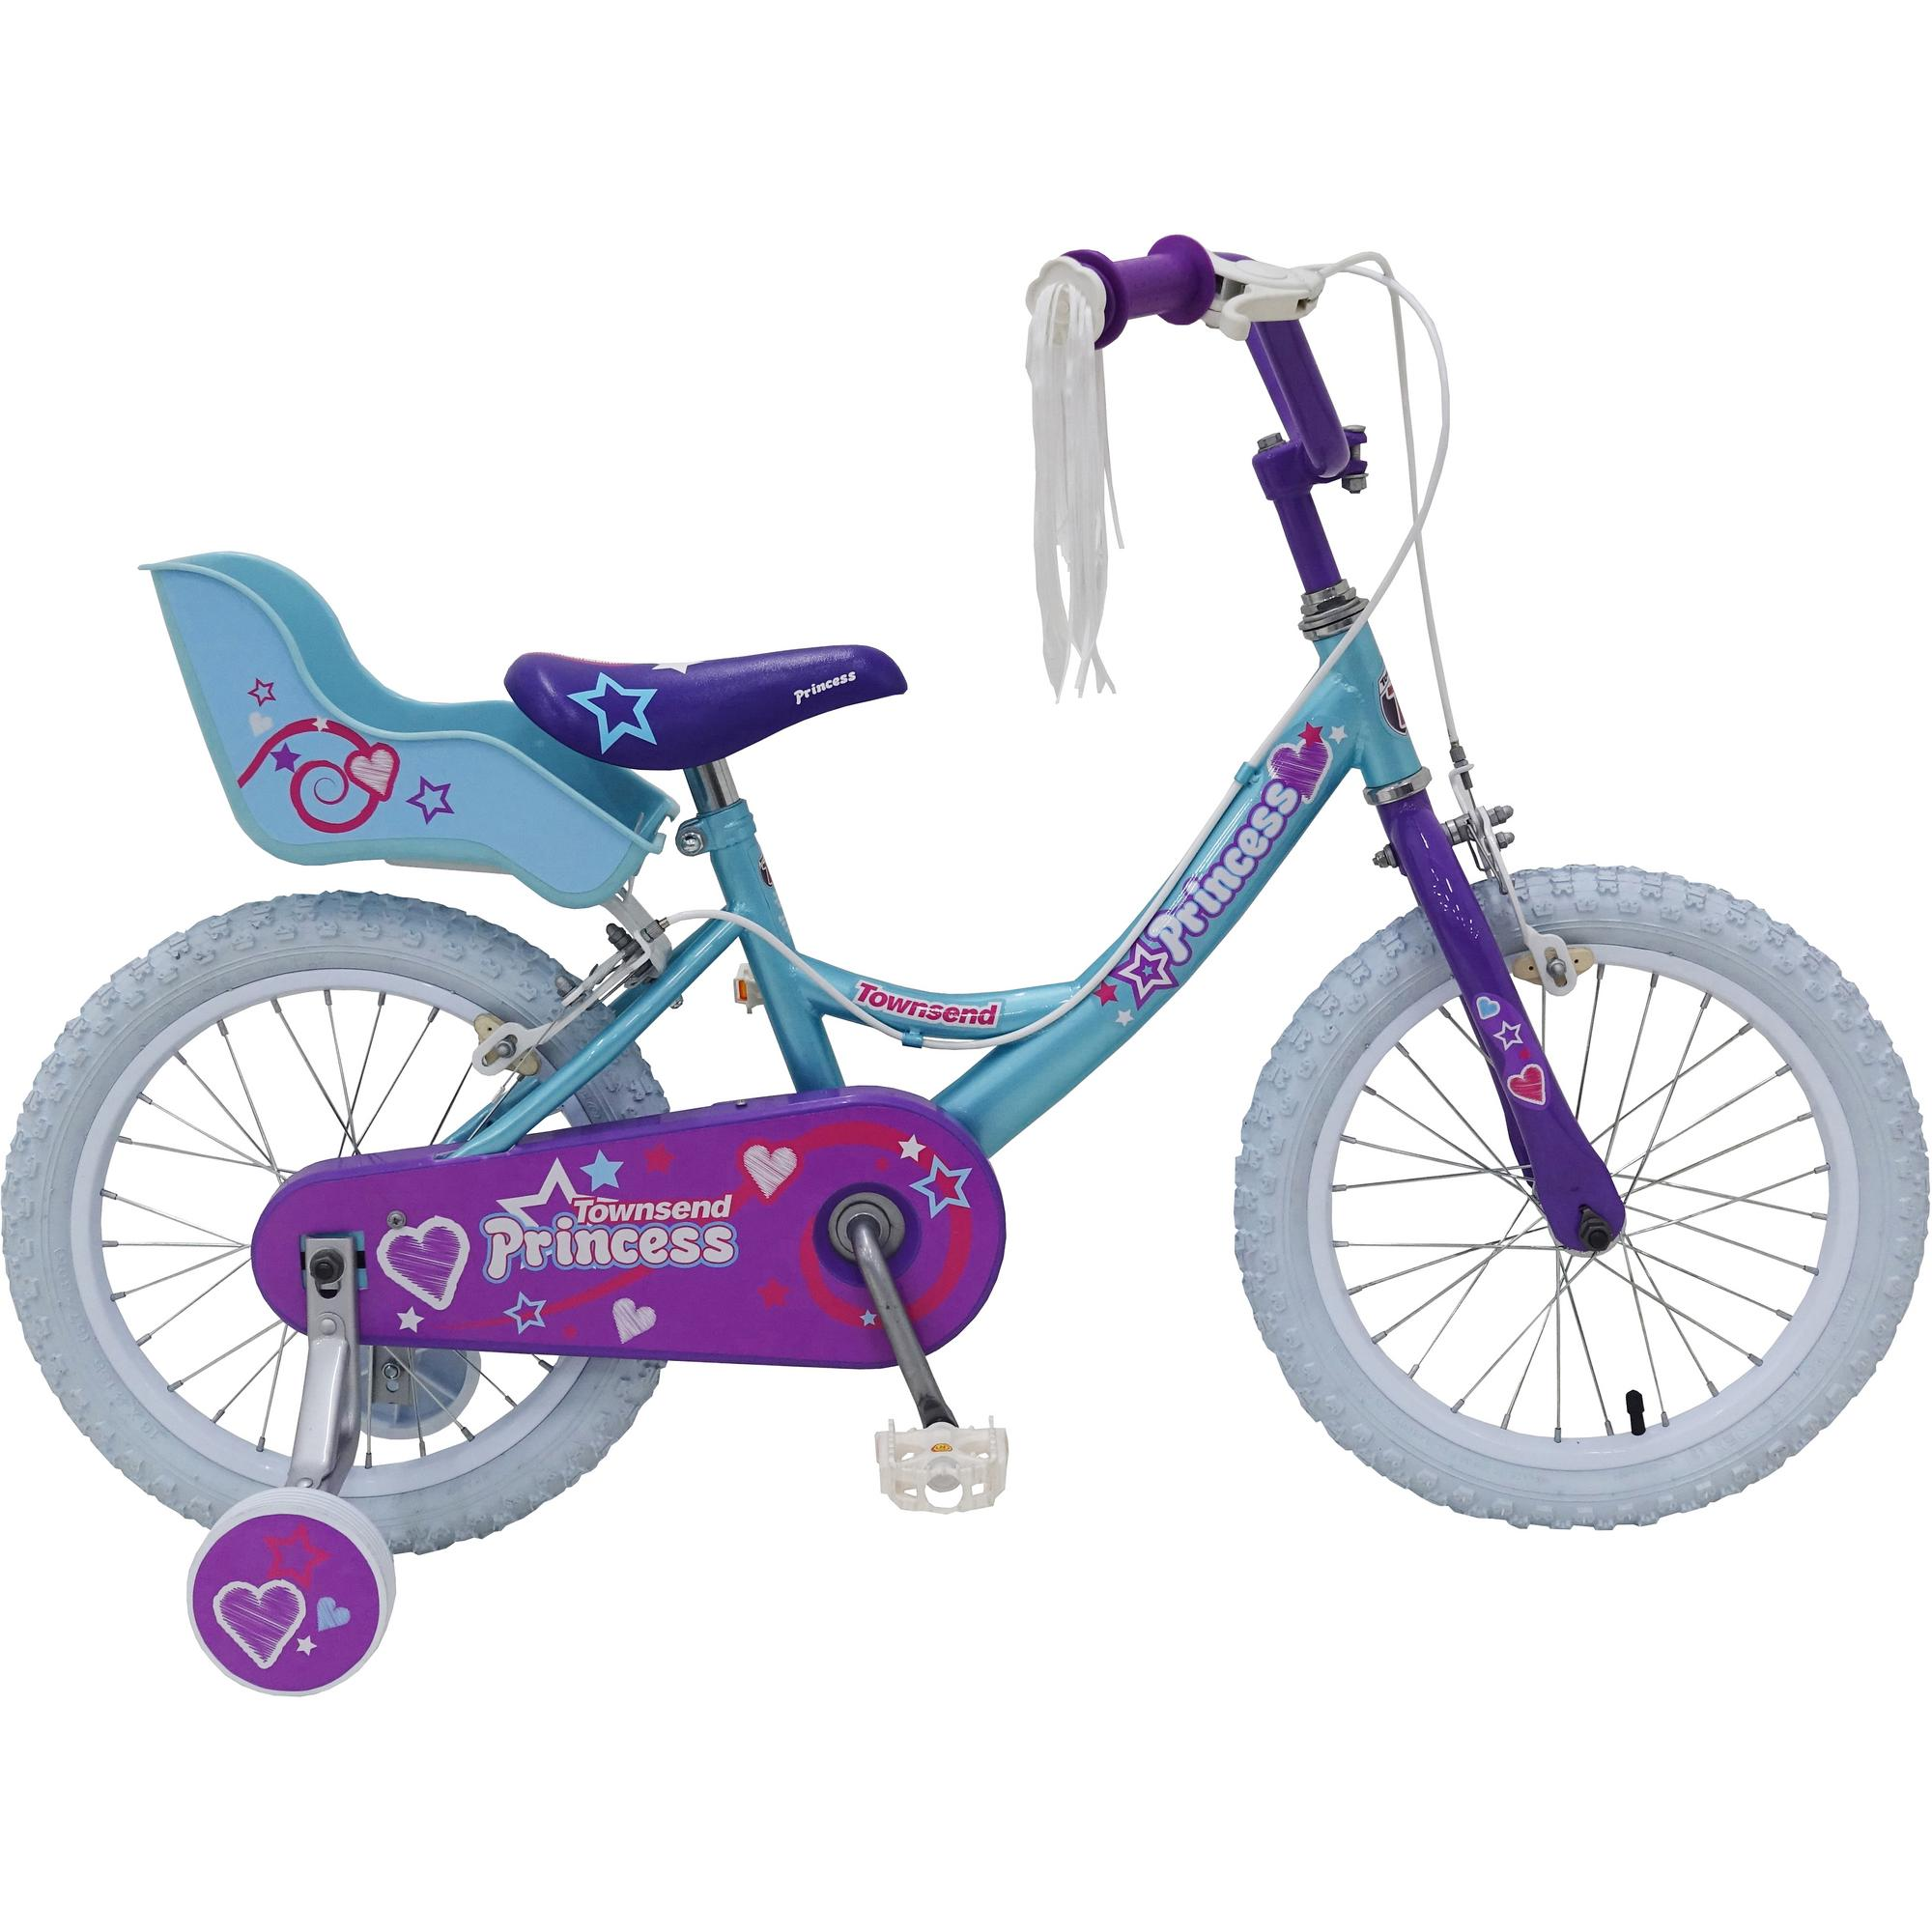 "Townsend  Princess 16"" Bike"